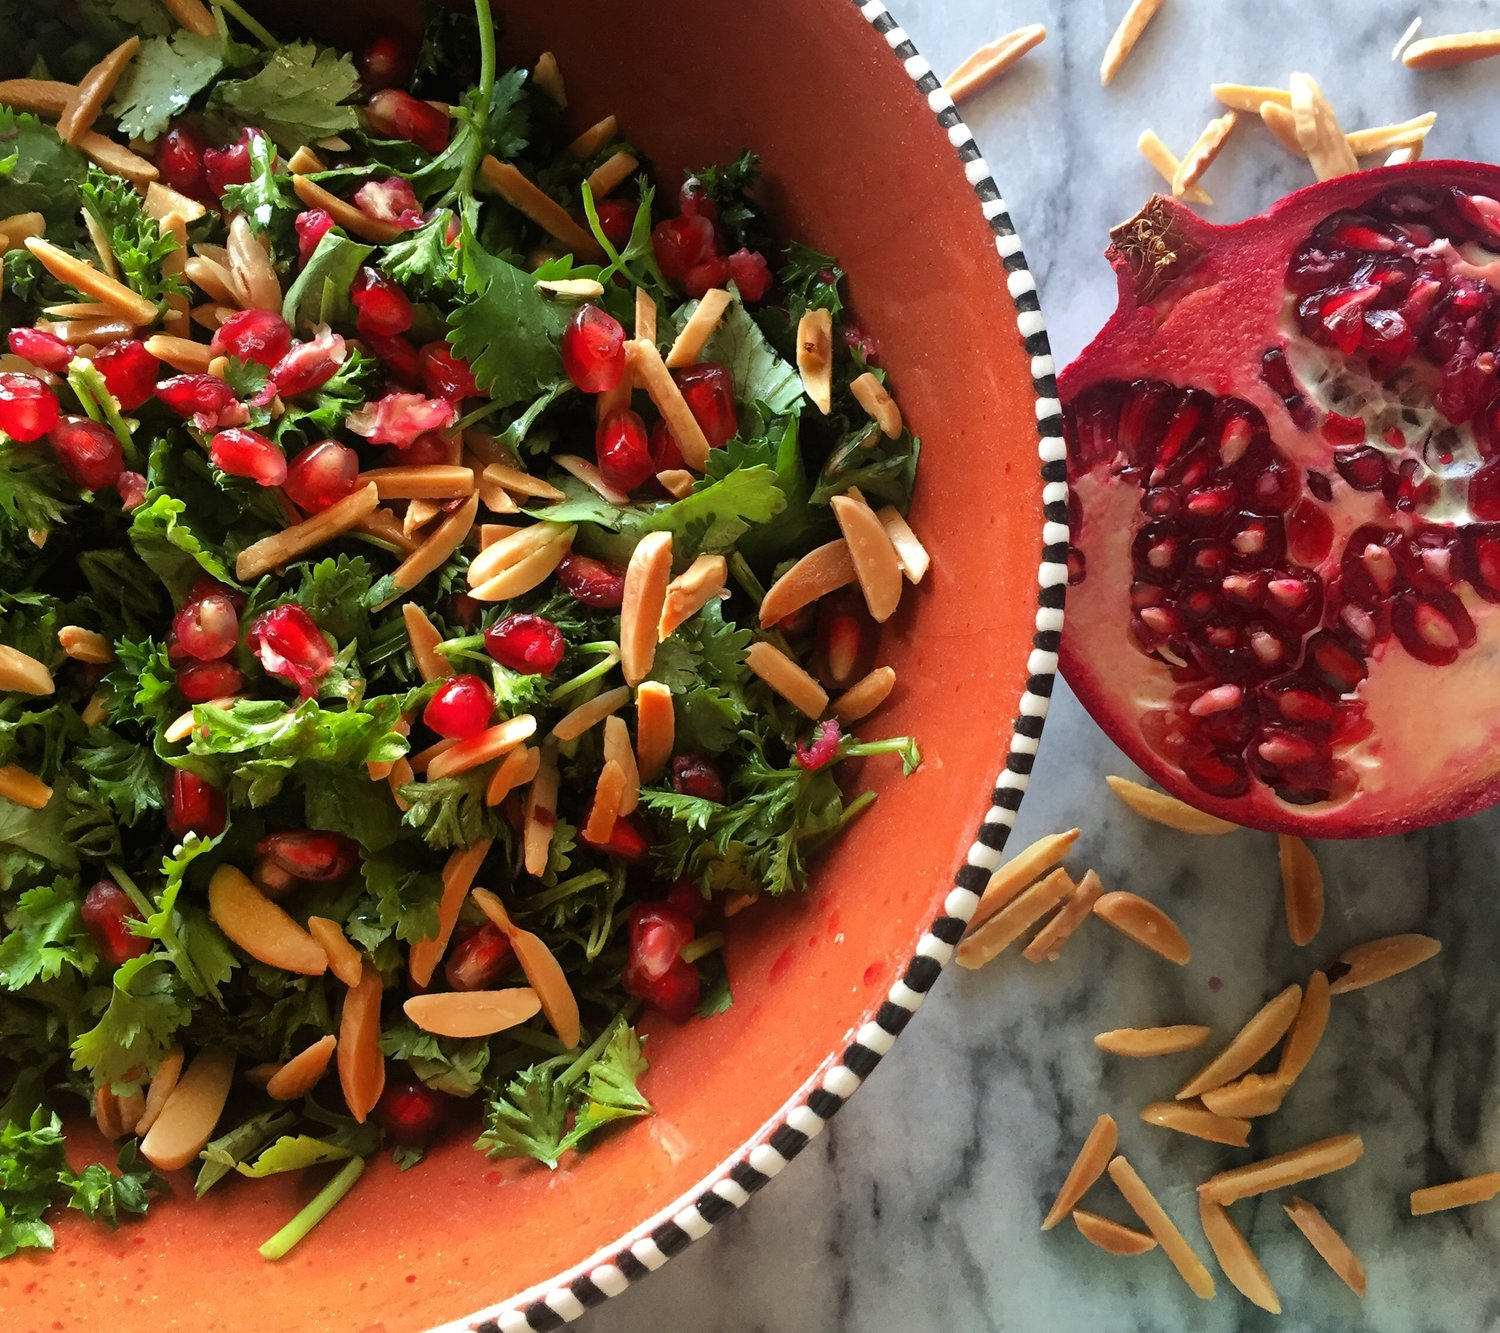 Herb Salad with Chilli Salt Roasted Almonds and a Orange and Pomegranate Dressing